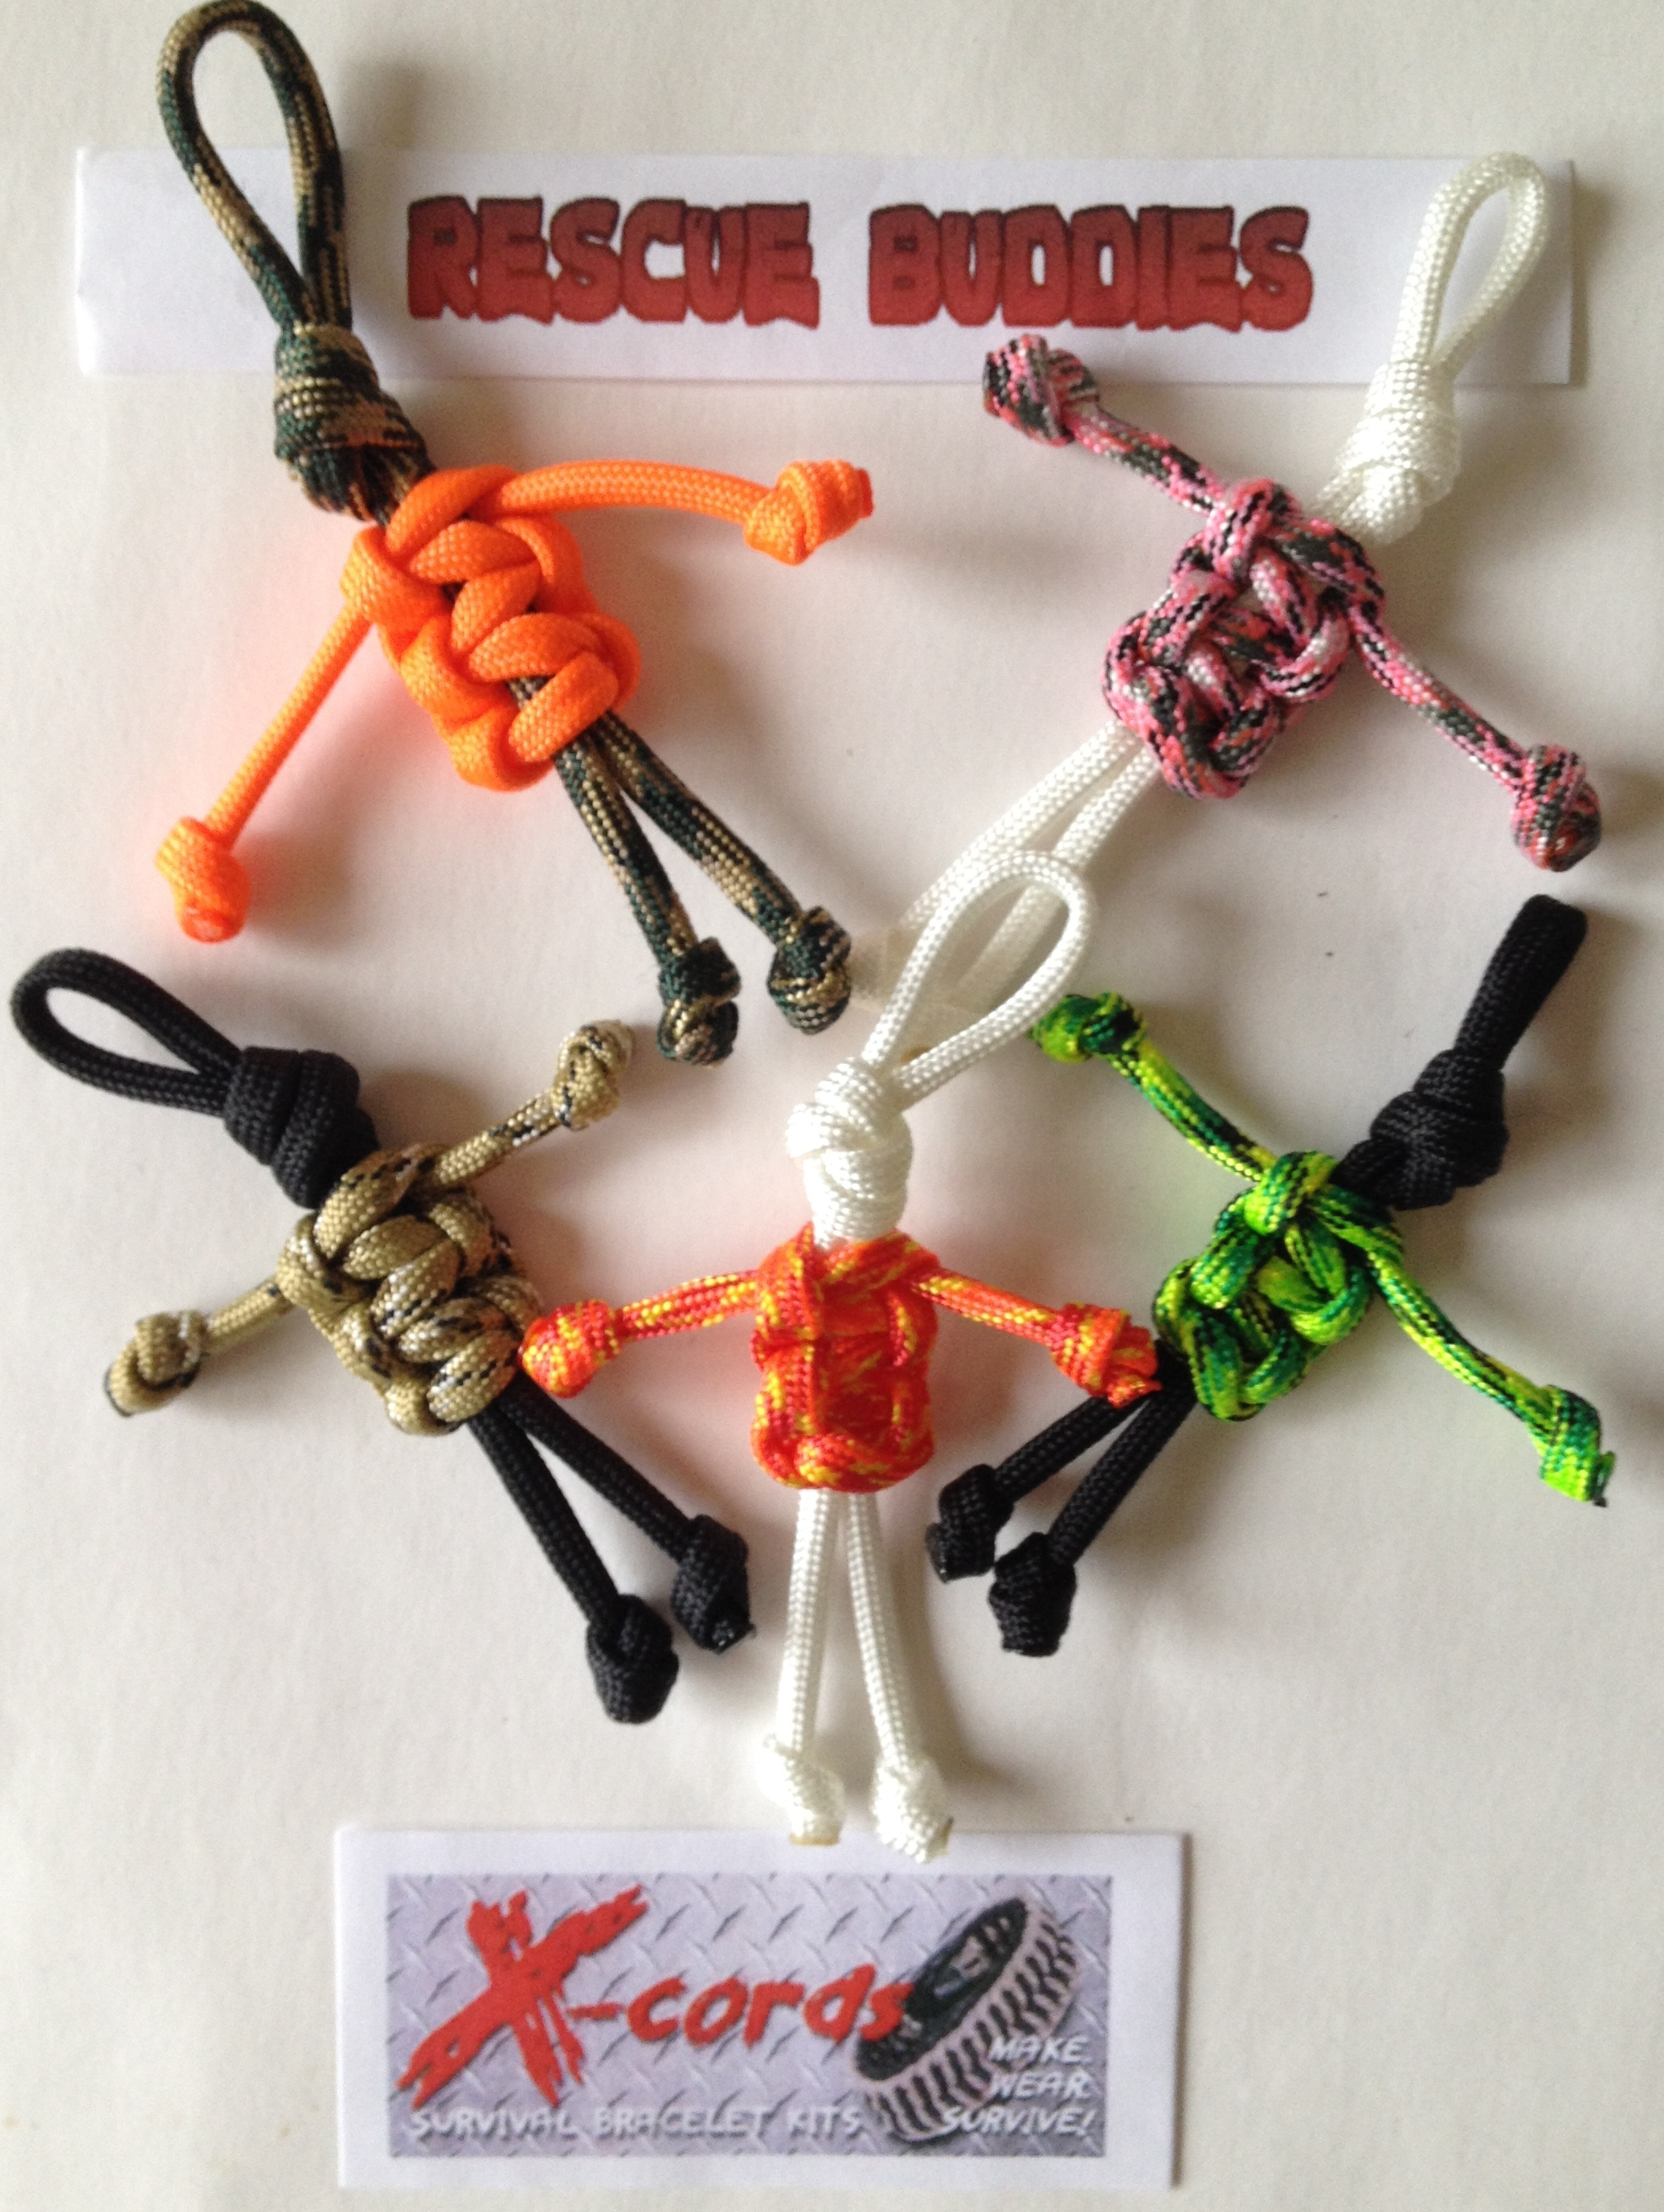 Rescue Buddies Paracord People Kit